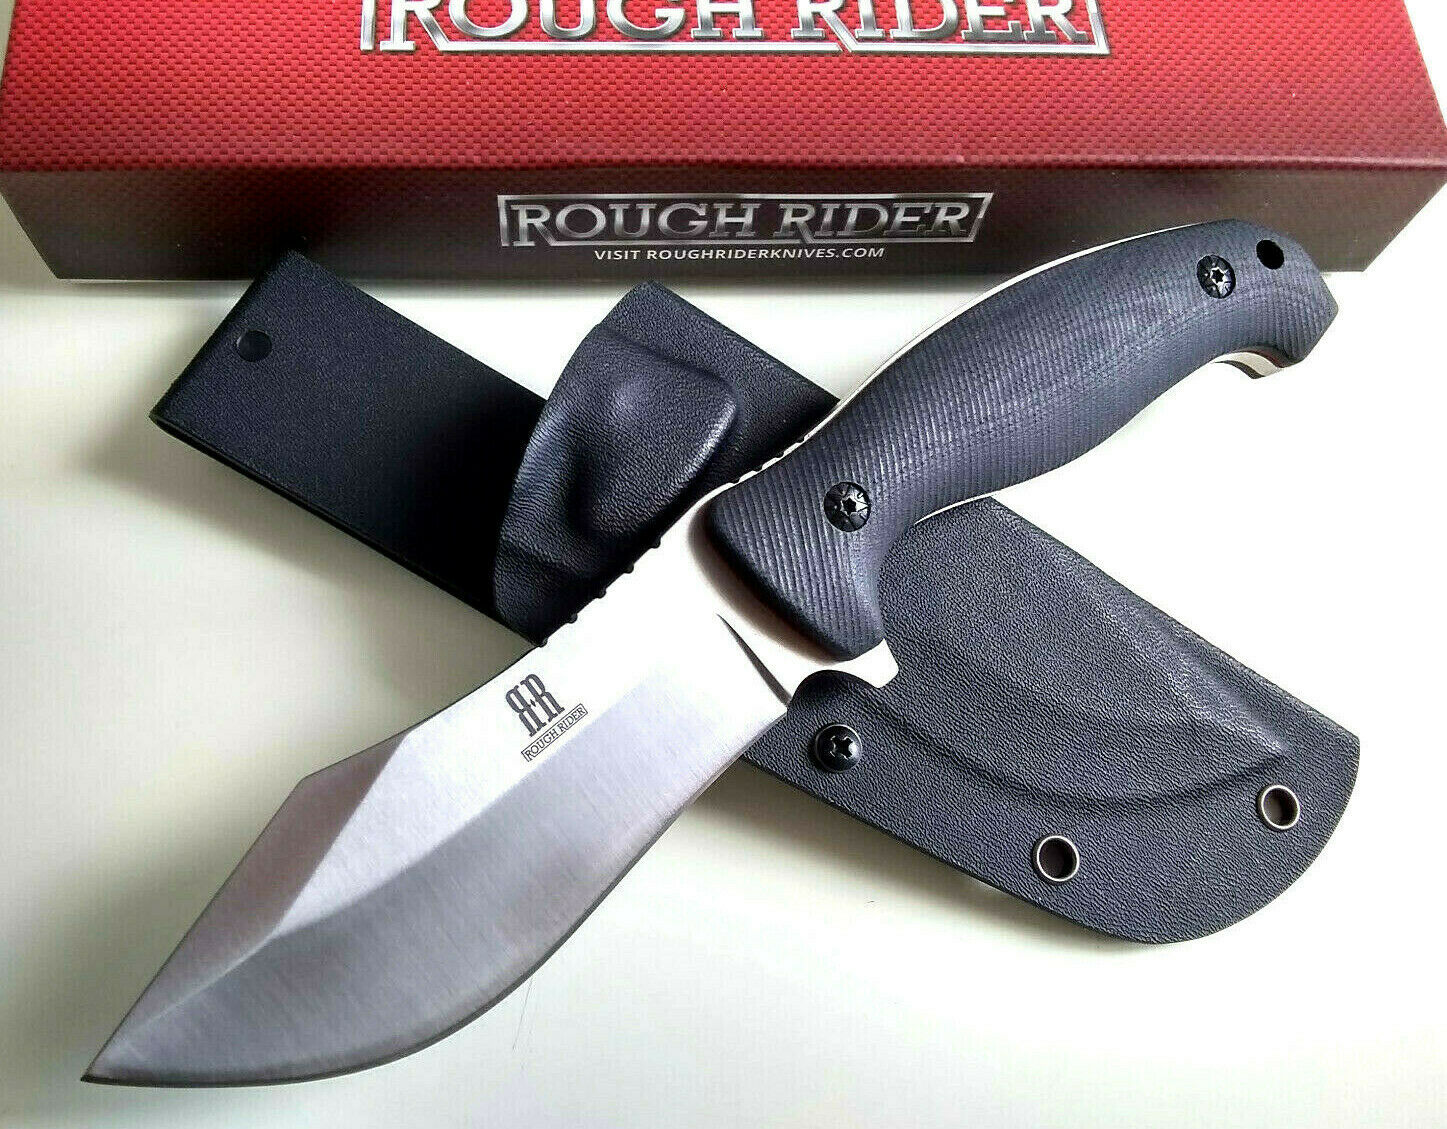 RR1870 G10 Fixed Blade Knife Horizontal & Vertical Concealed Carry Kydex Sheath 4.7 mm Thick